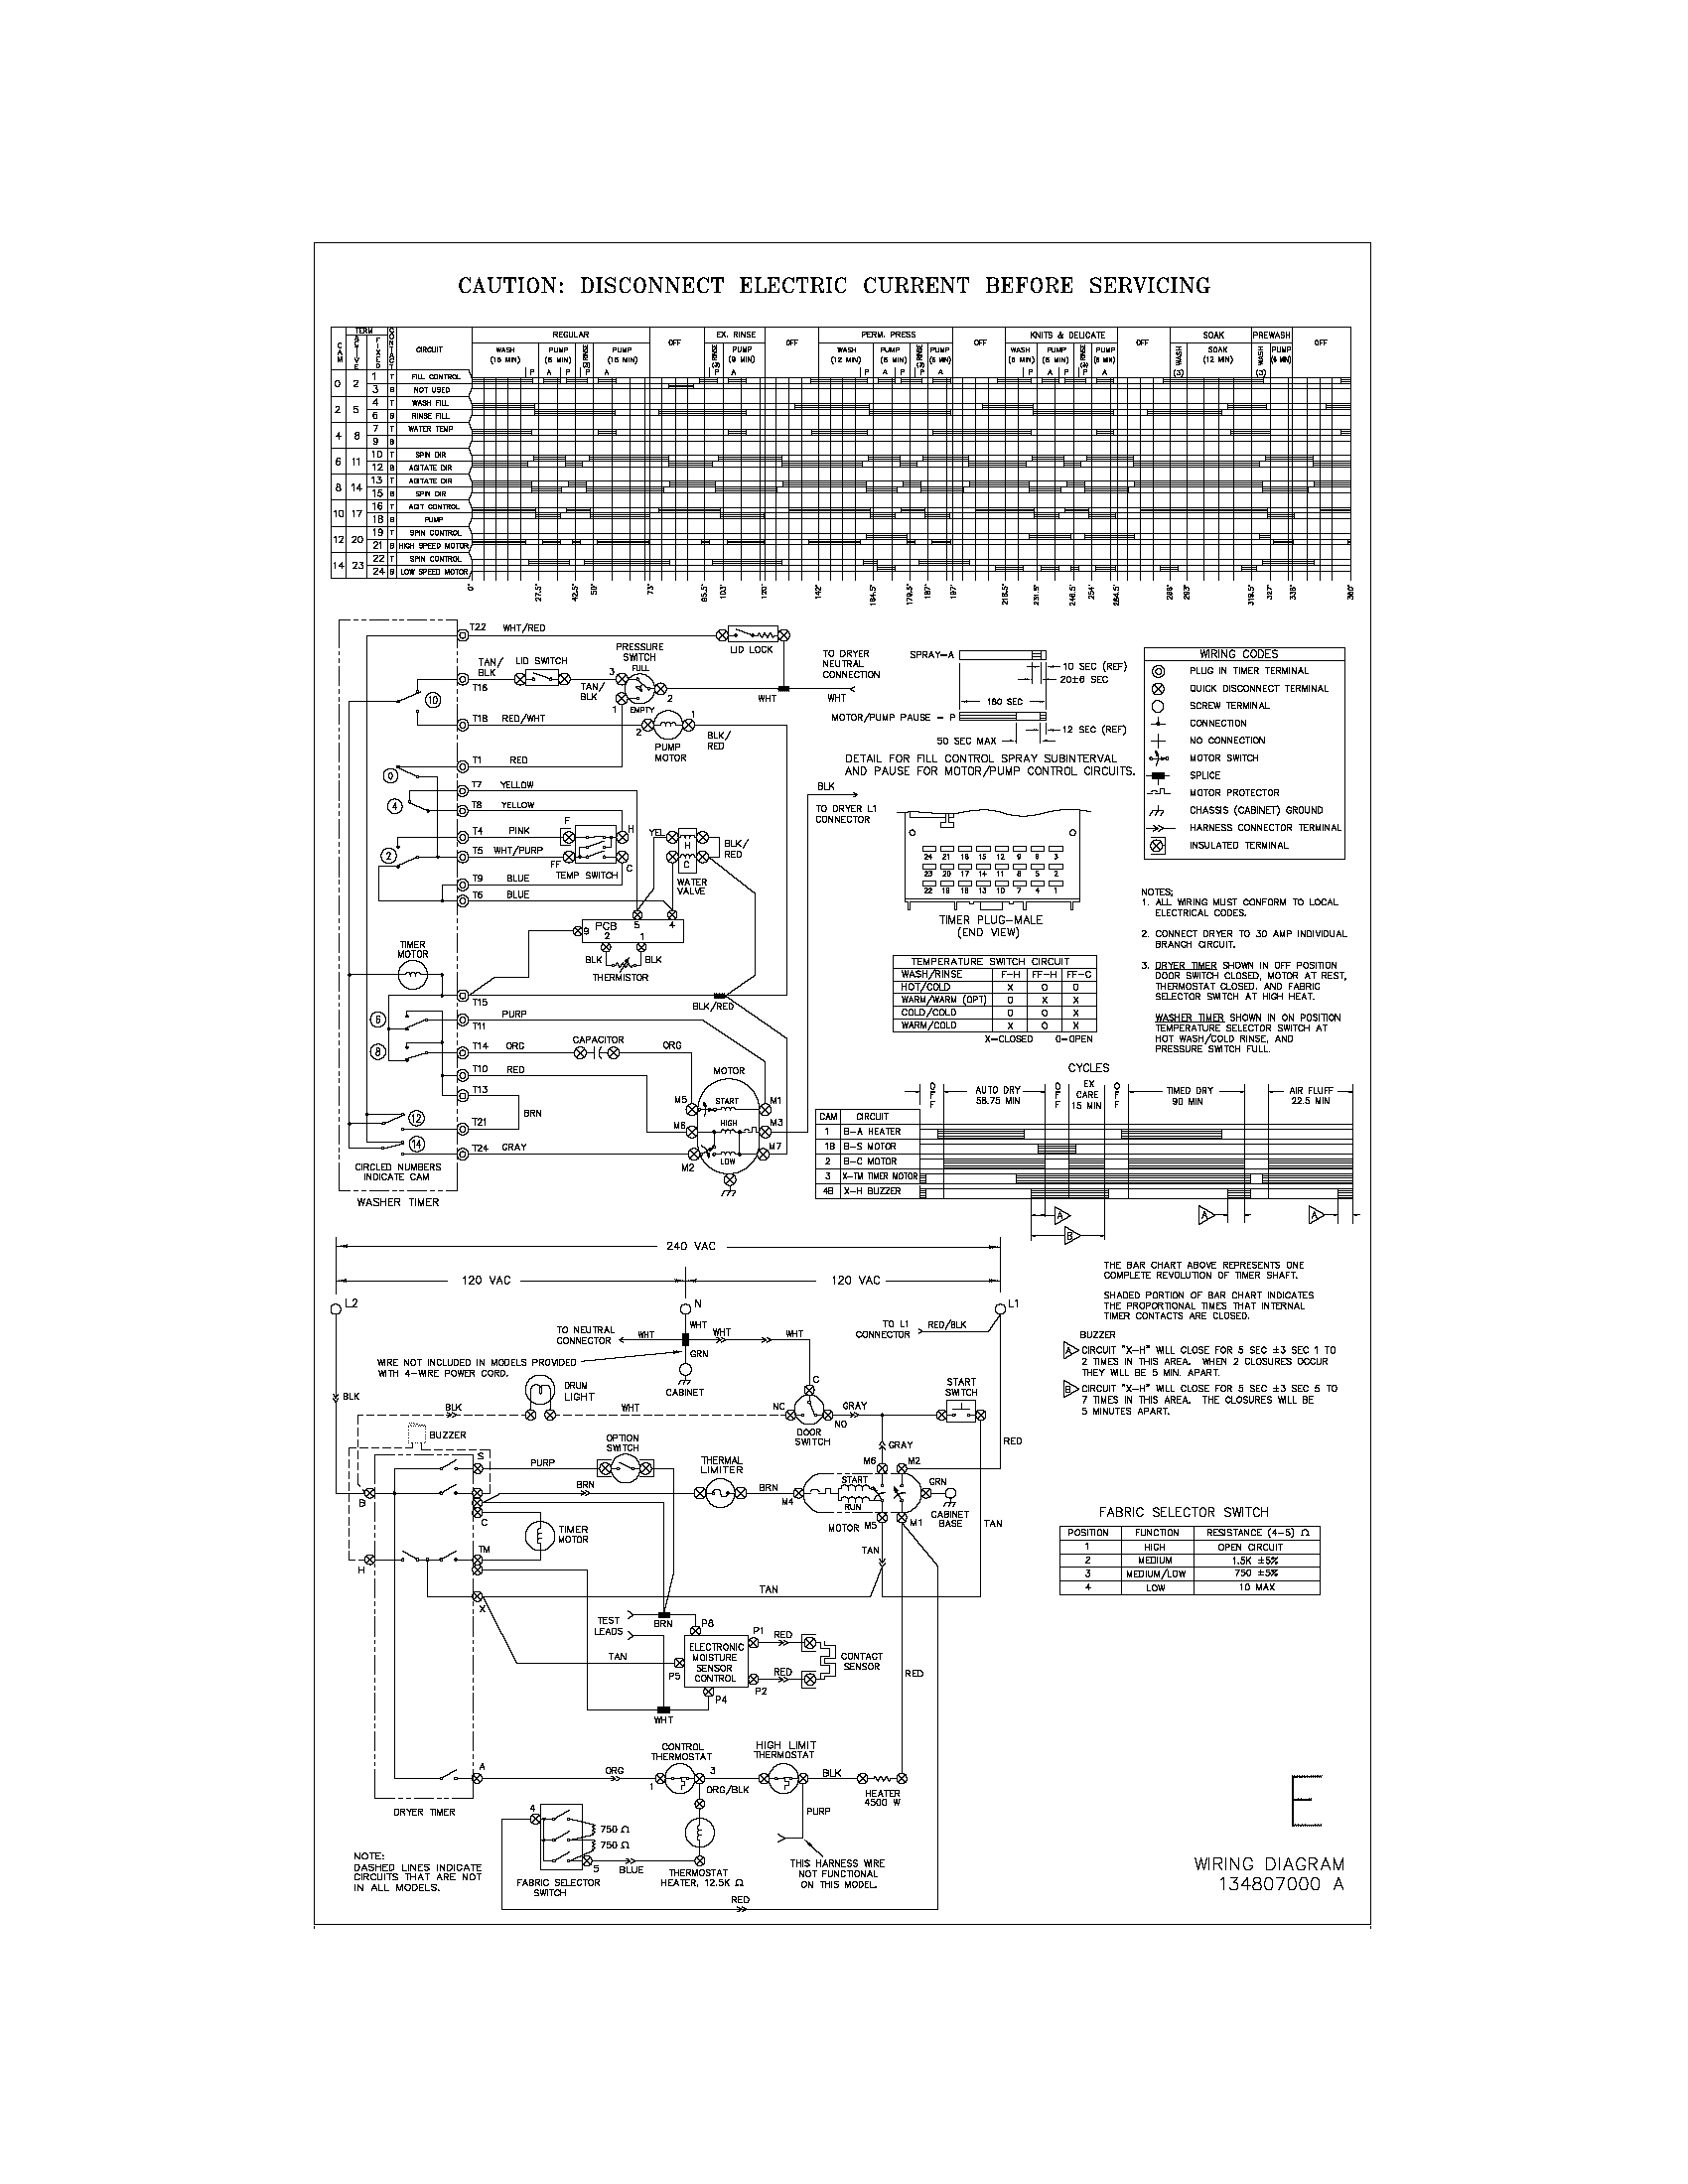 Dryer Wiring Diagram Sle Wiring Diagrams Appliance Aid On Whirlpool